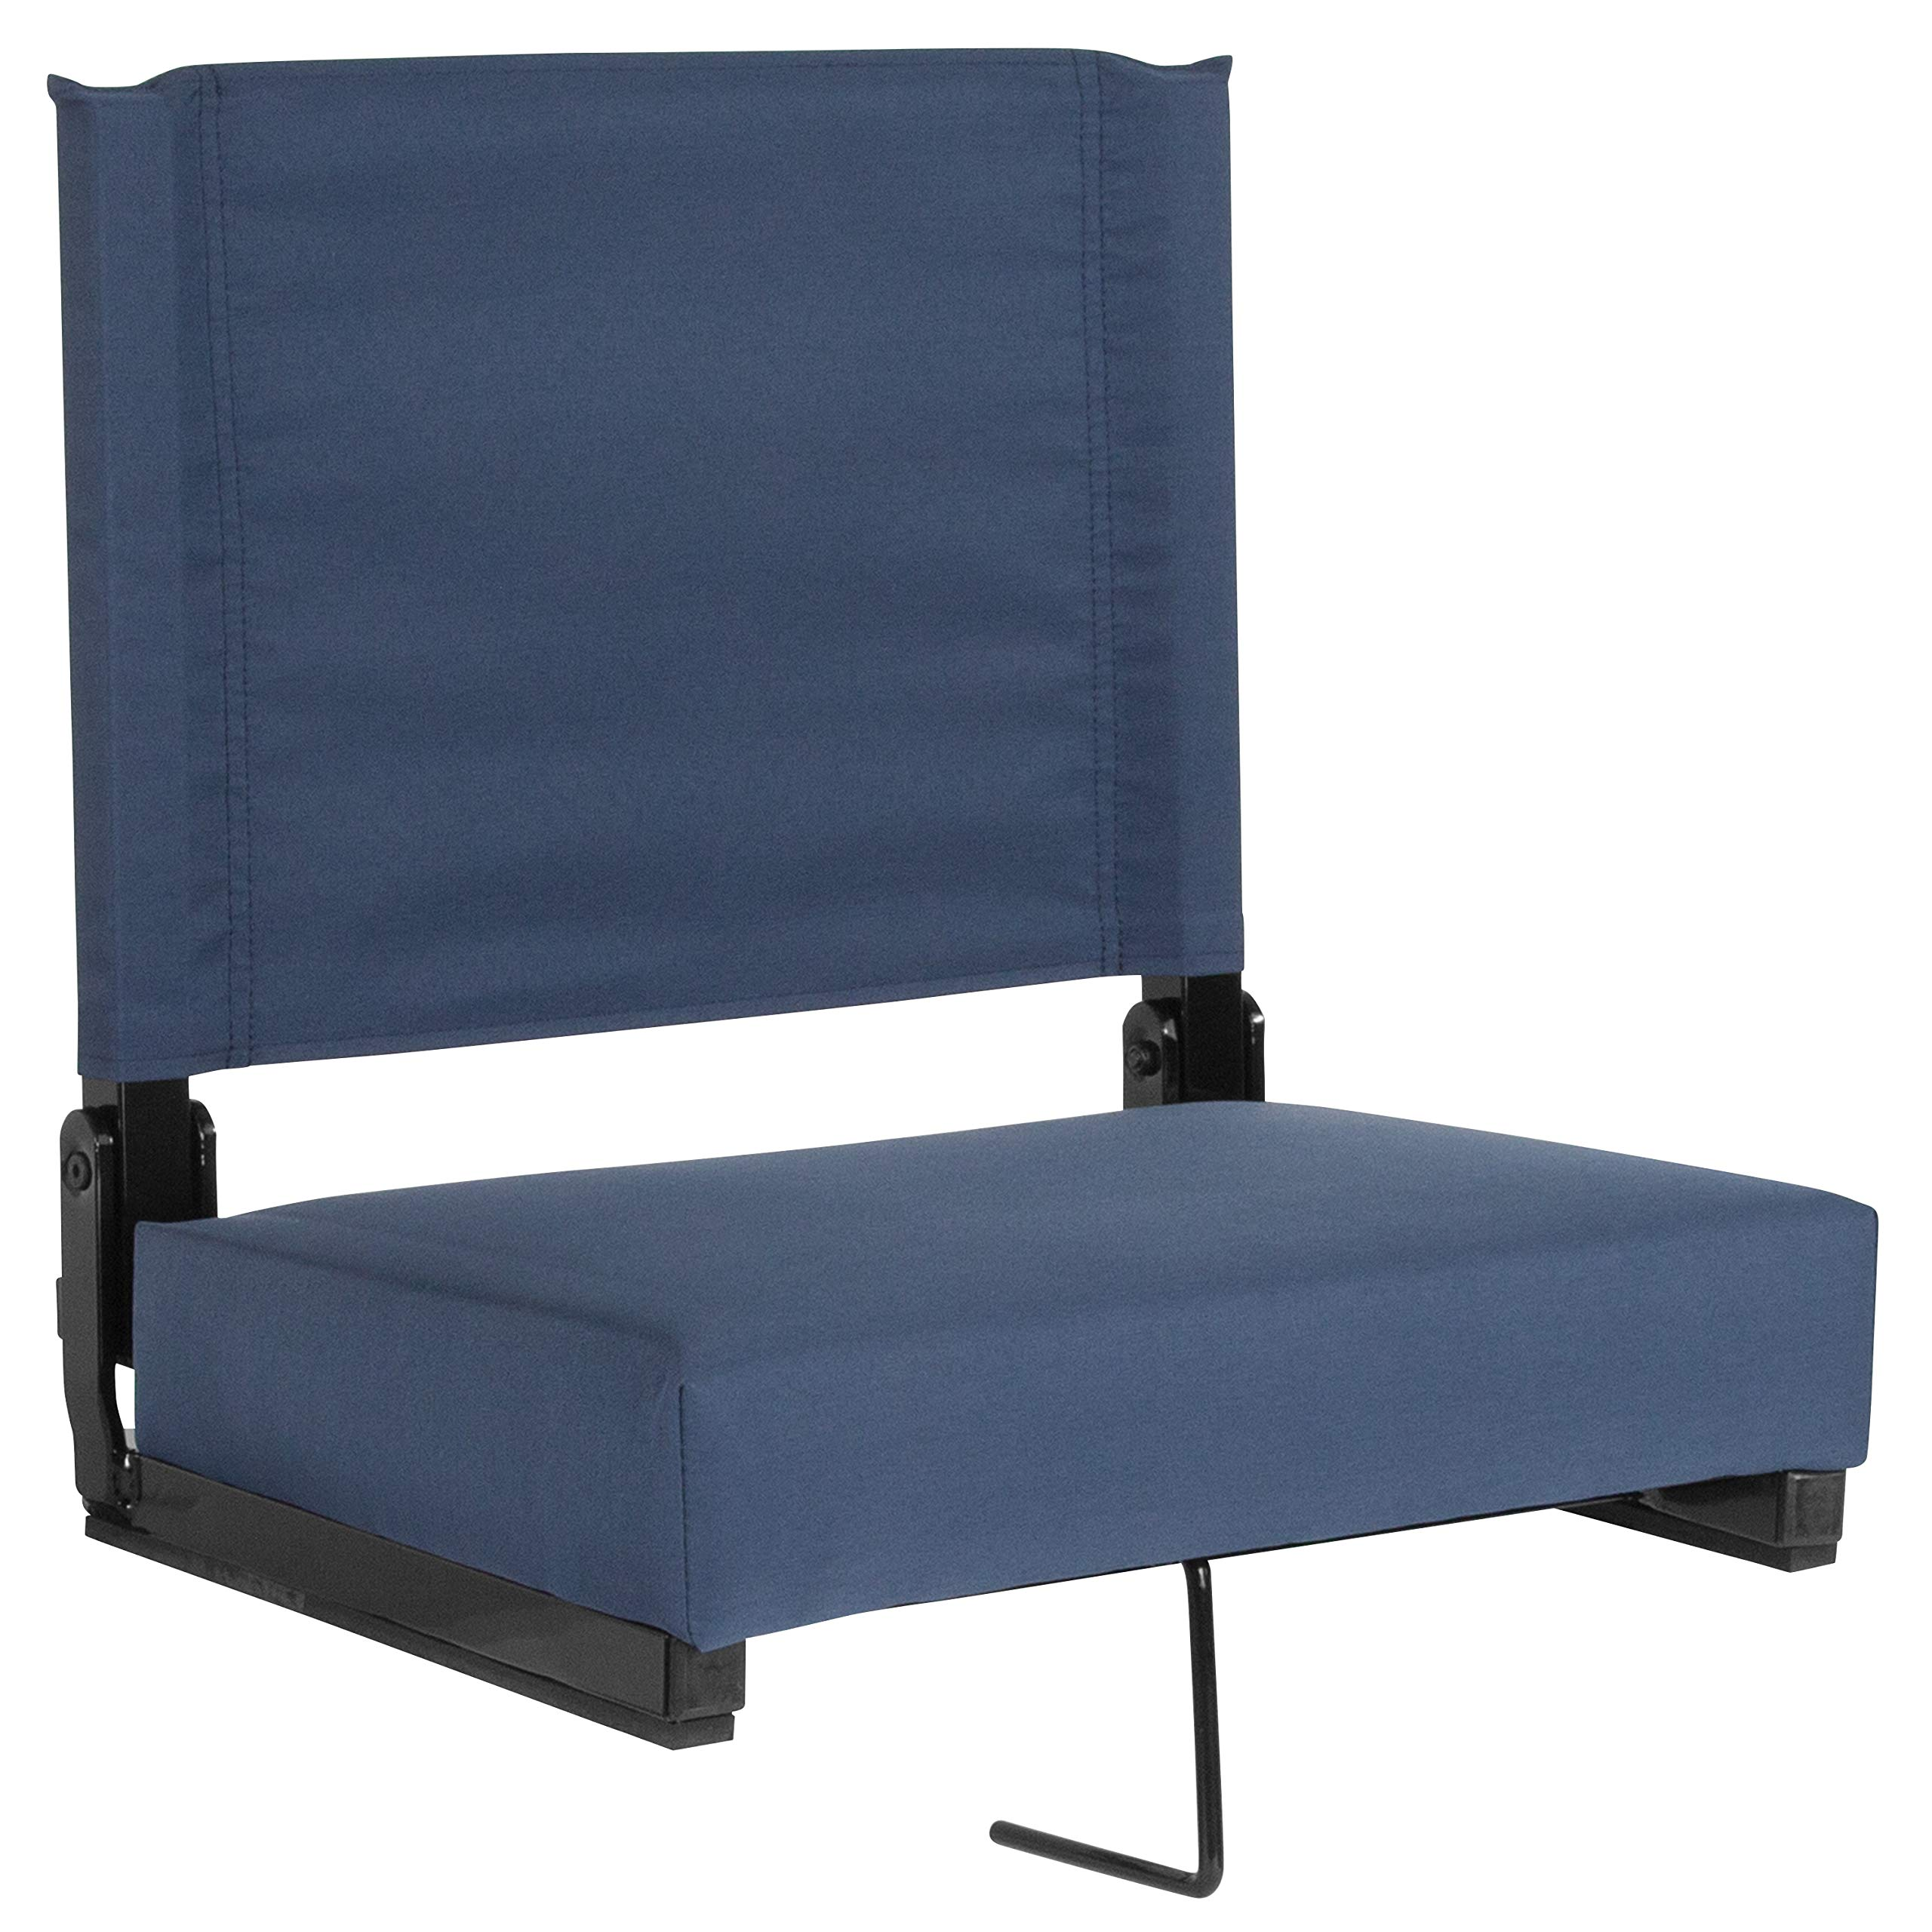 Flash Furniture Grandstand Comfort Seats by Flash with Ultra-Padded Seat in Navy Blue by Flash Furniture